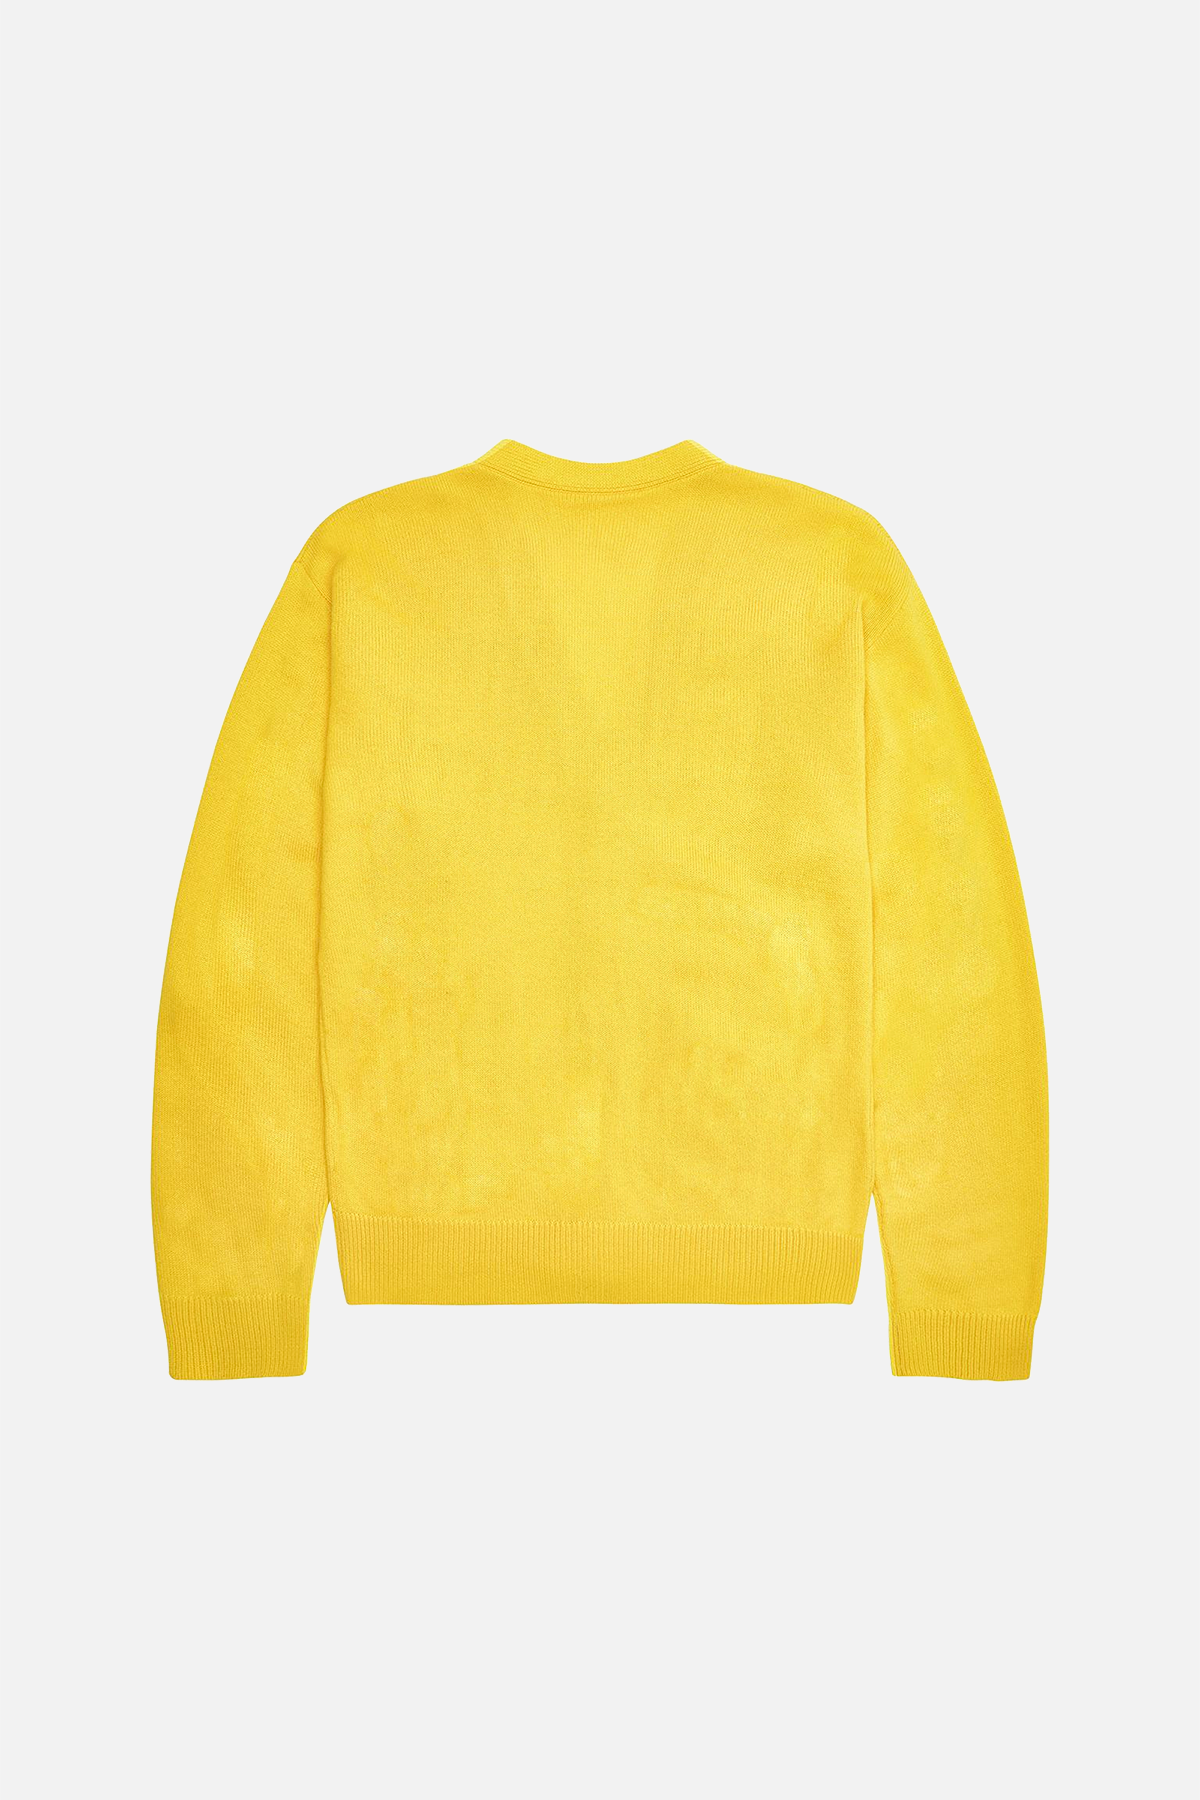 The Cardigan in Yolk